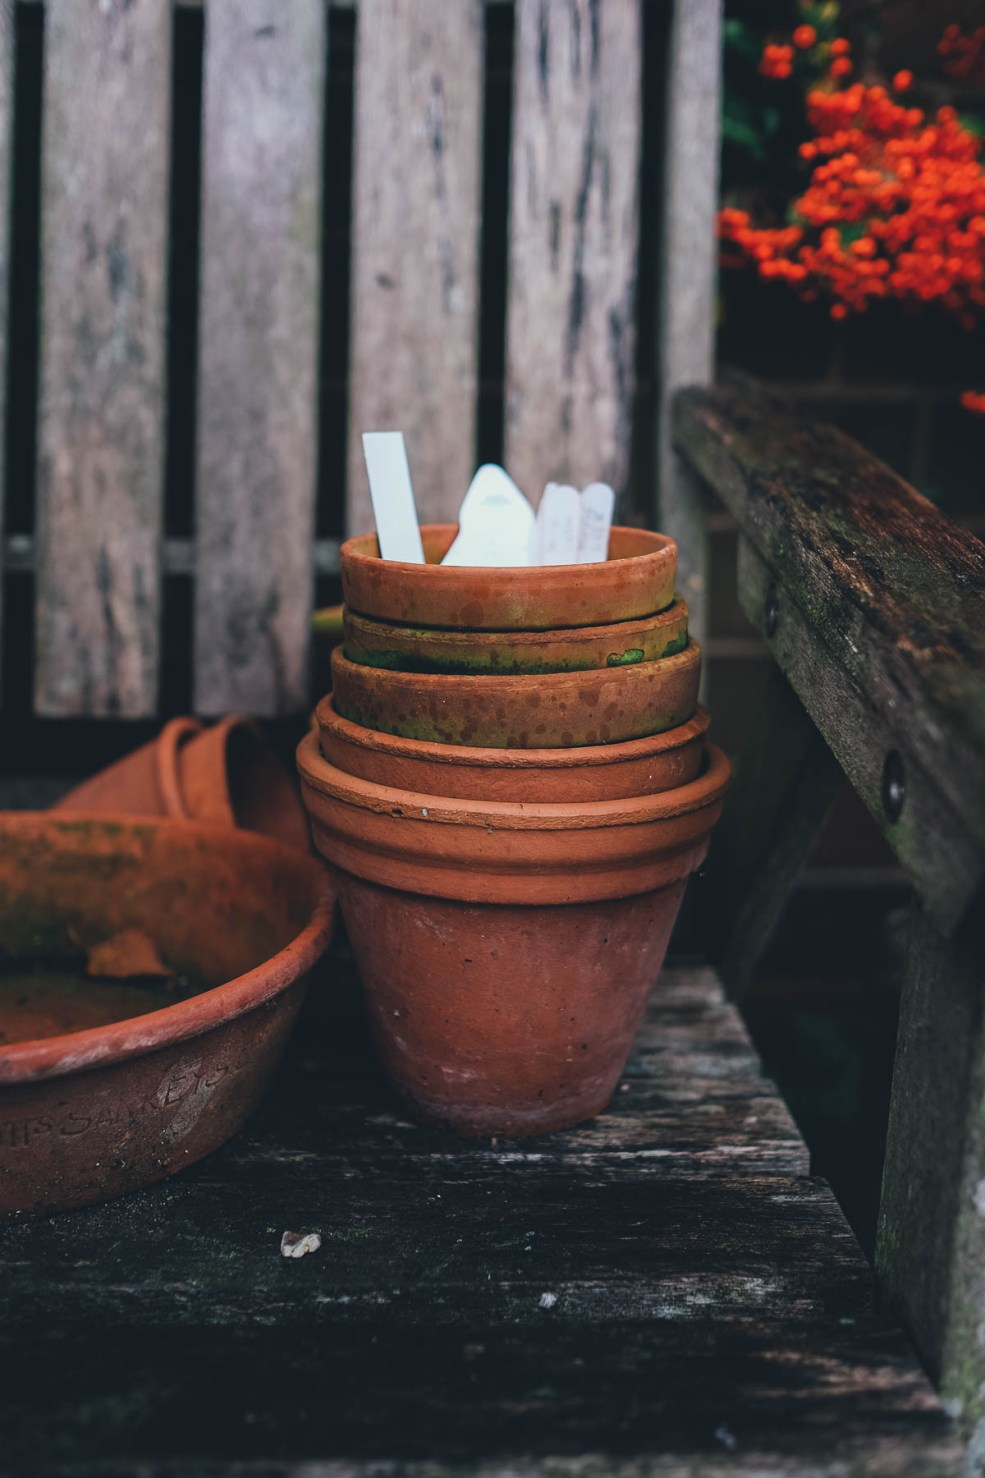 Terracotta pots on a wet day